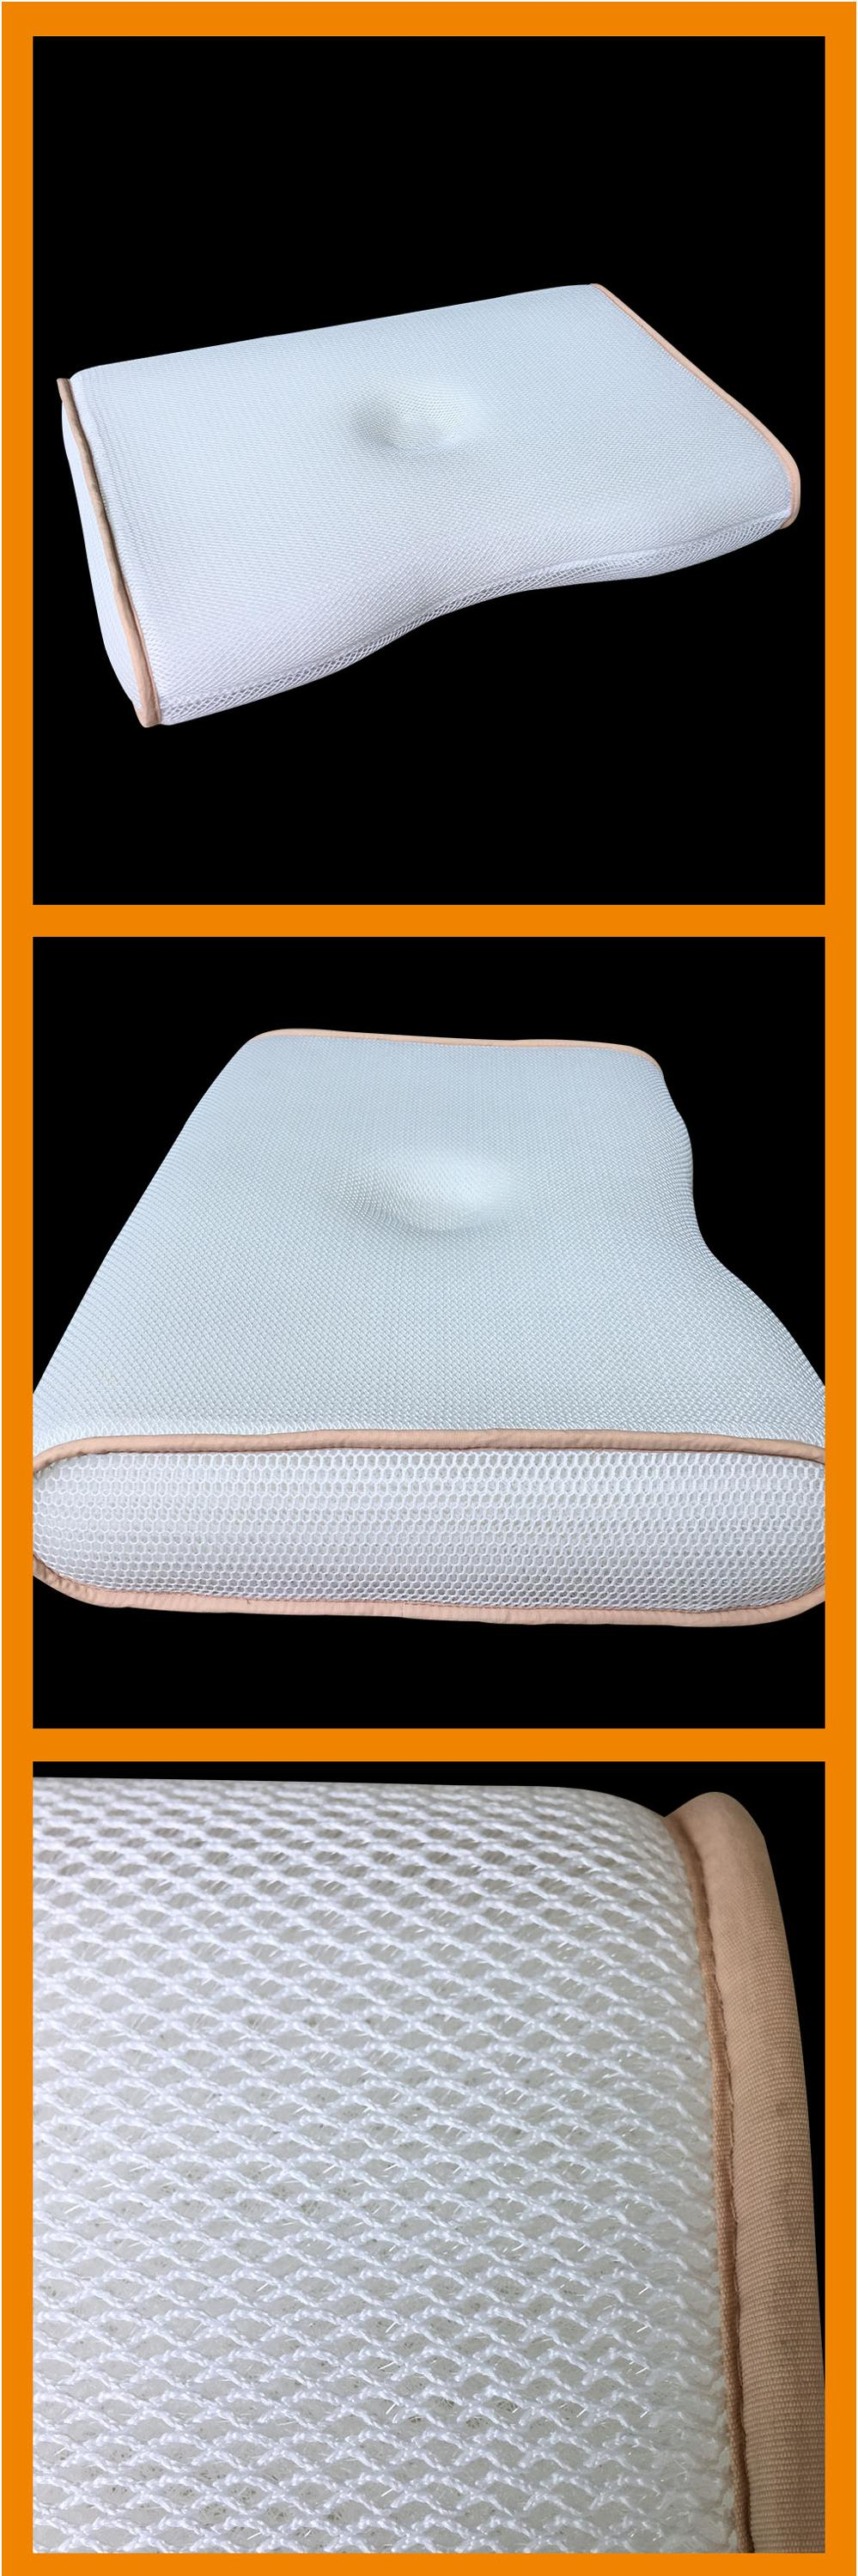 cooling breathable and washable wide sleep thick mesh  pillow